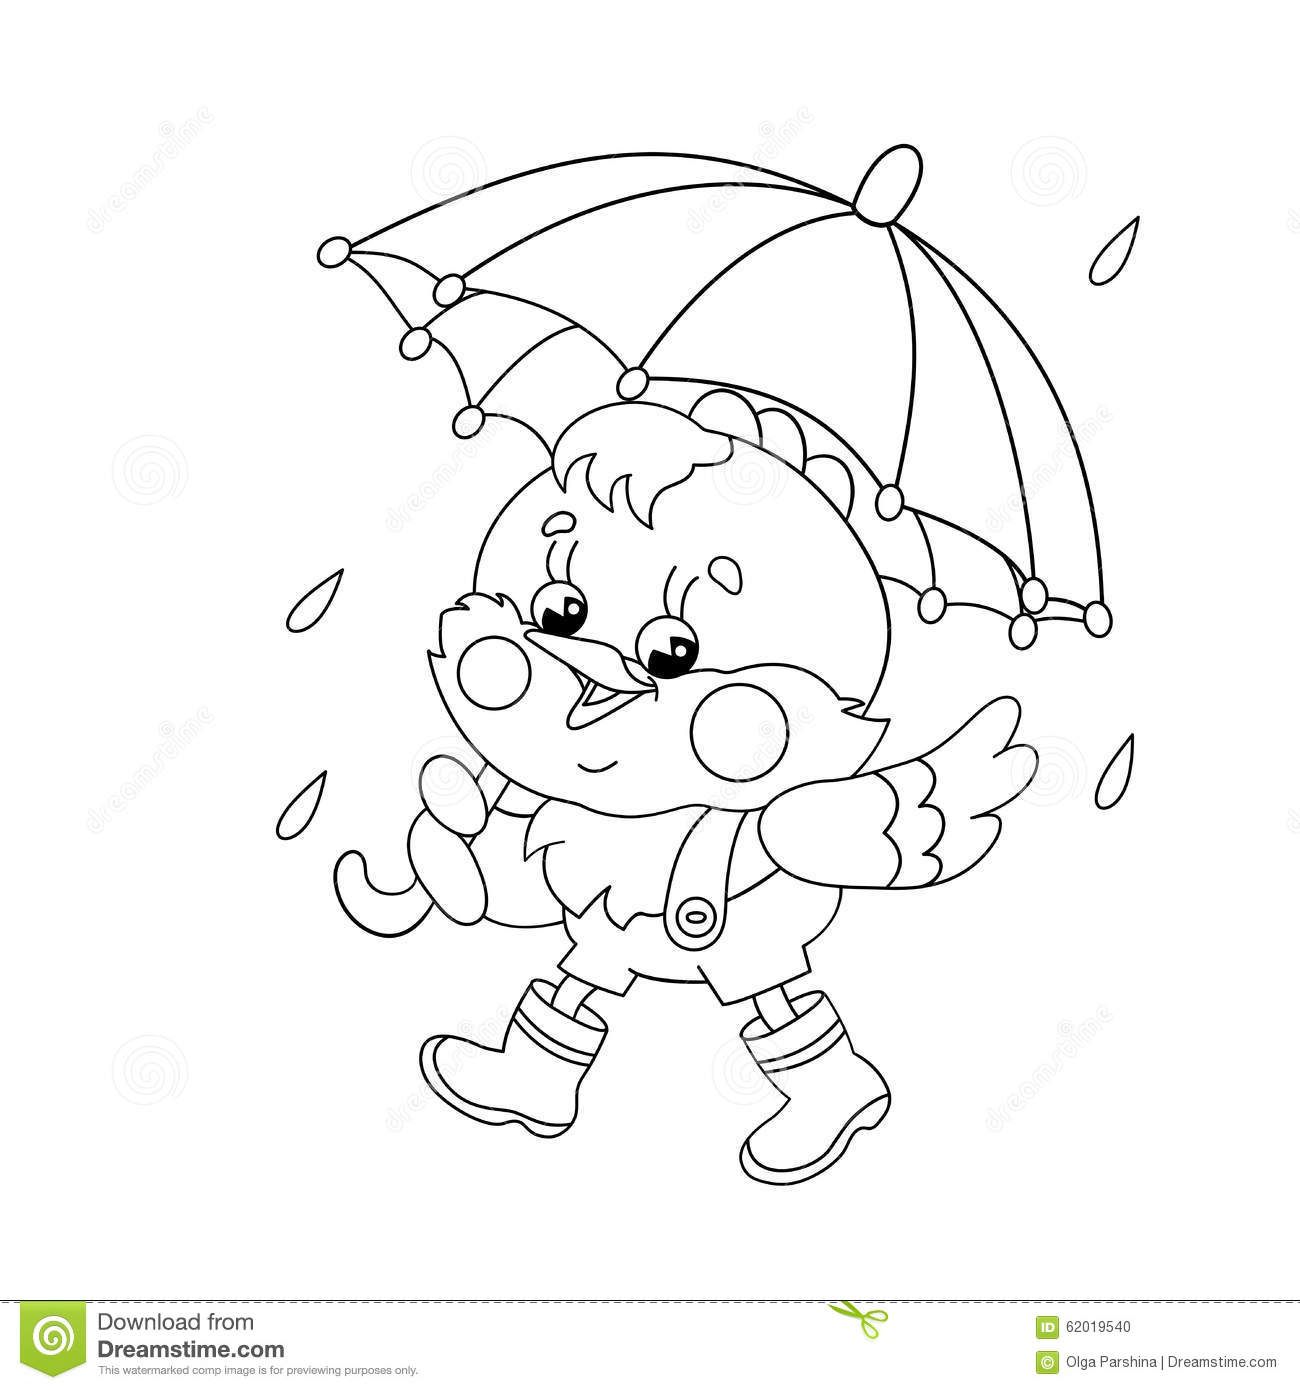 coloring page outline of a happy chicken walking in the rain stock